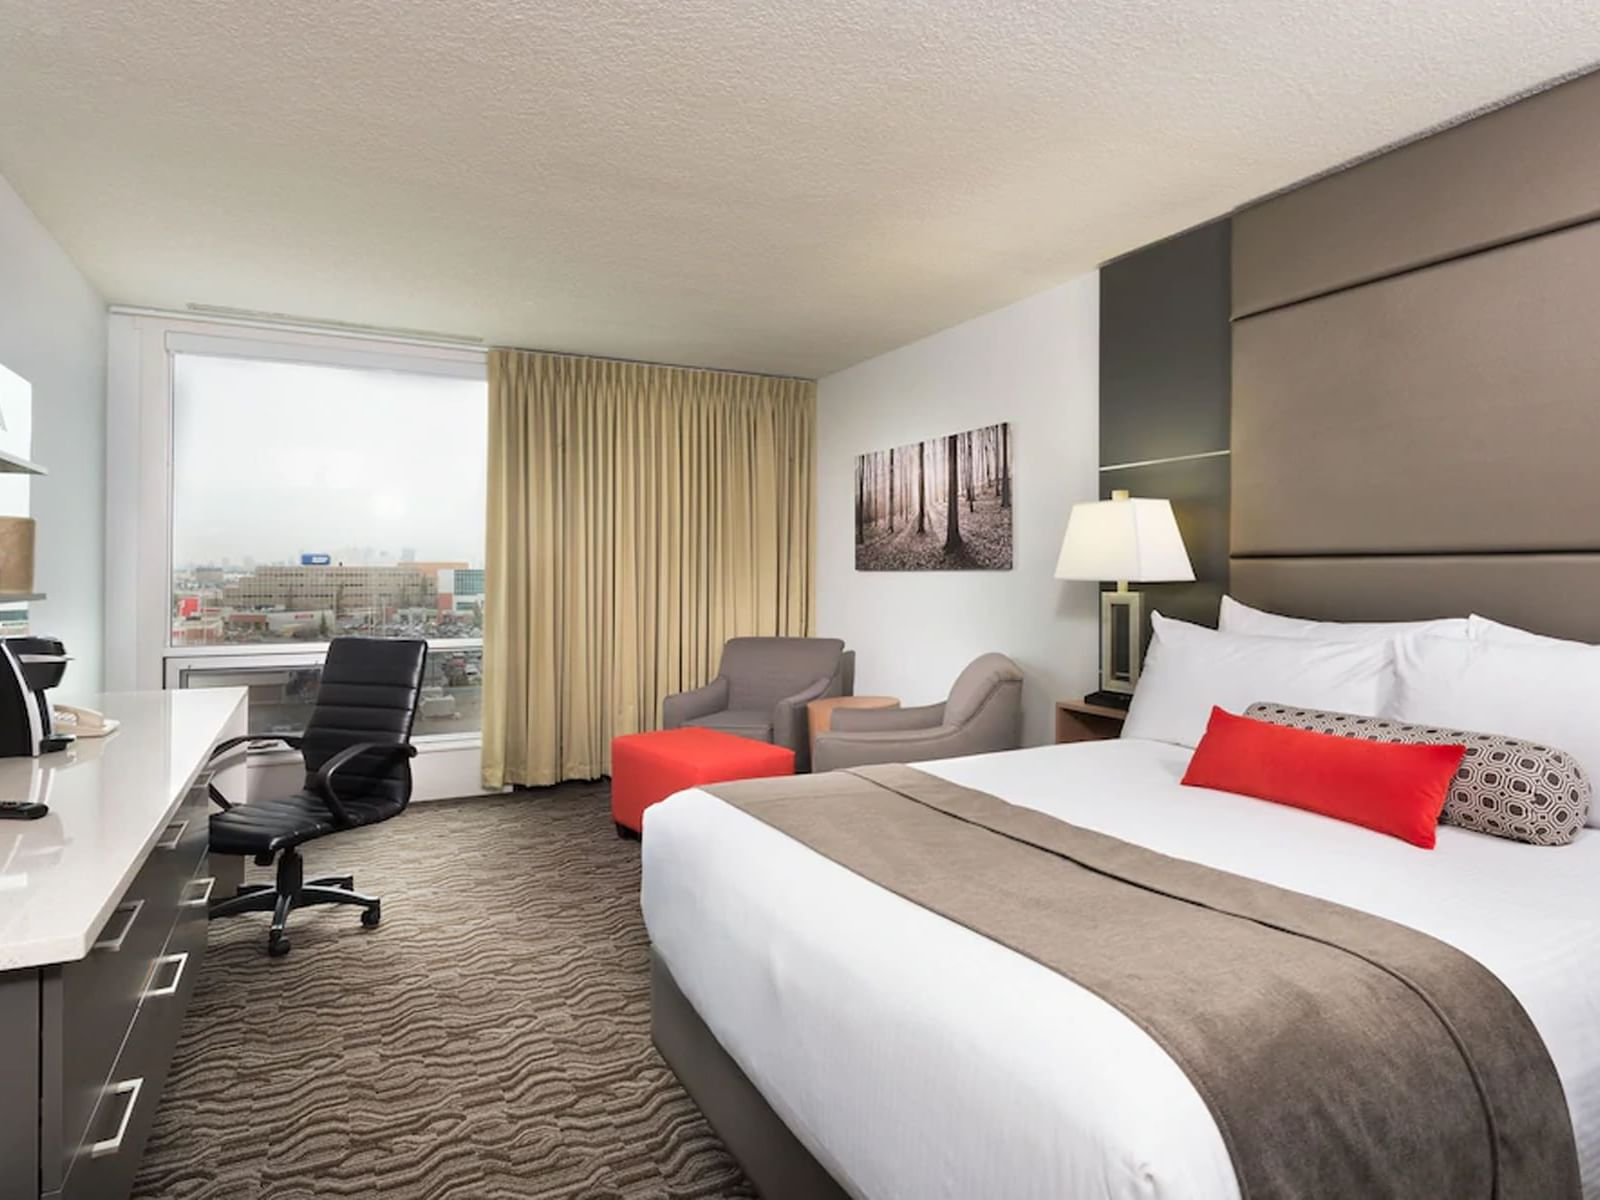 Premium King Room with one bed at Carriage House Hotel